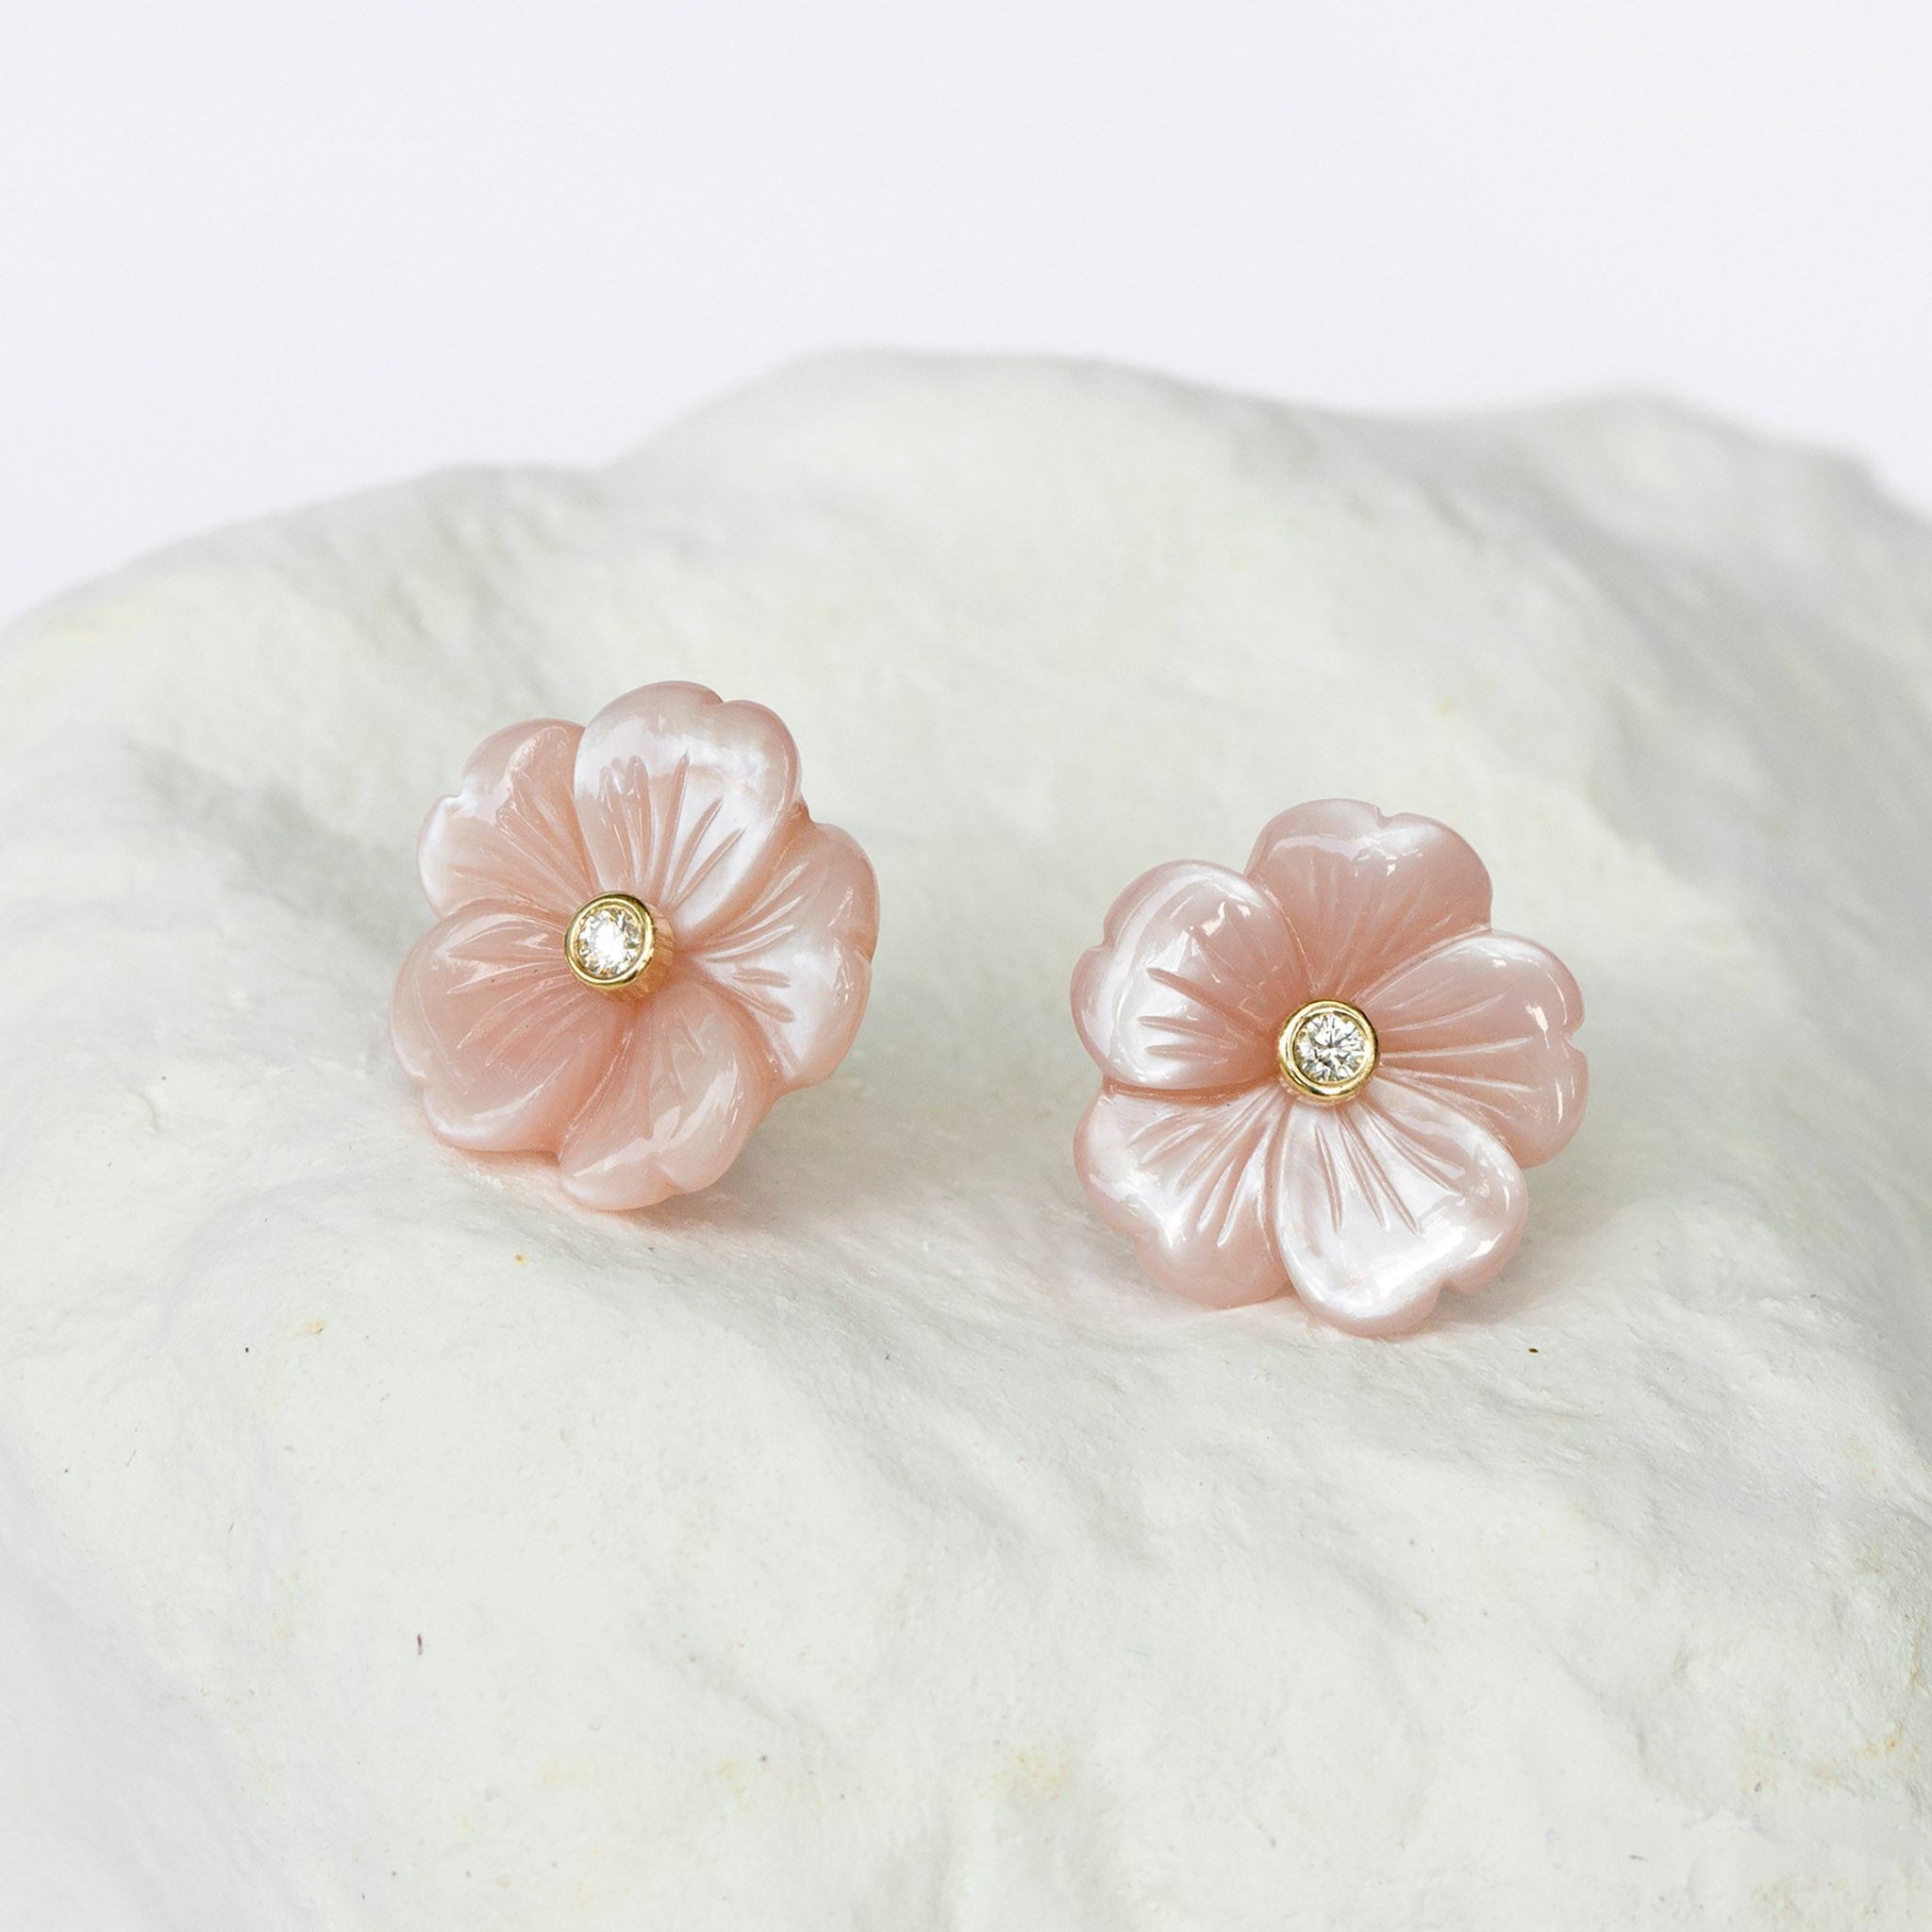 Blush pink Cherry Blossom mother-of-pearl flower studs medium size